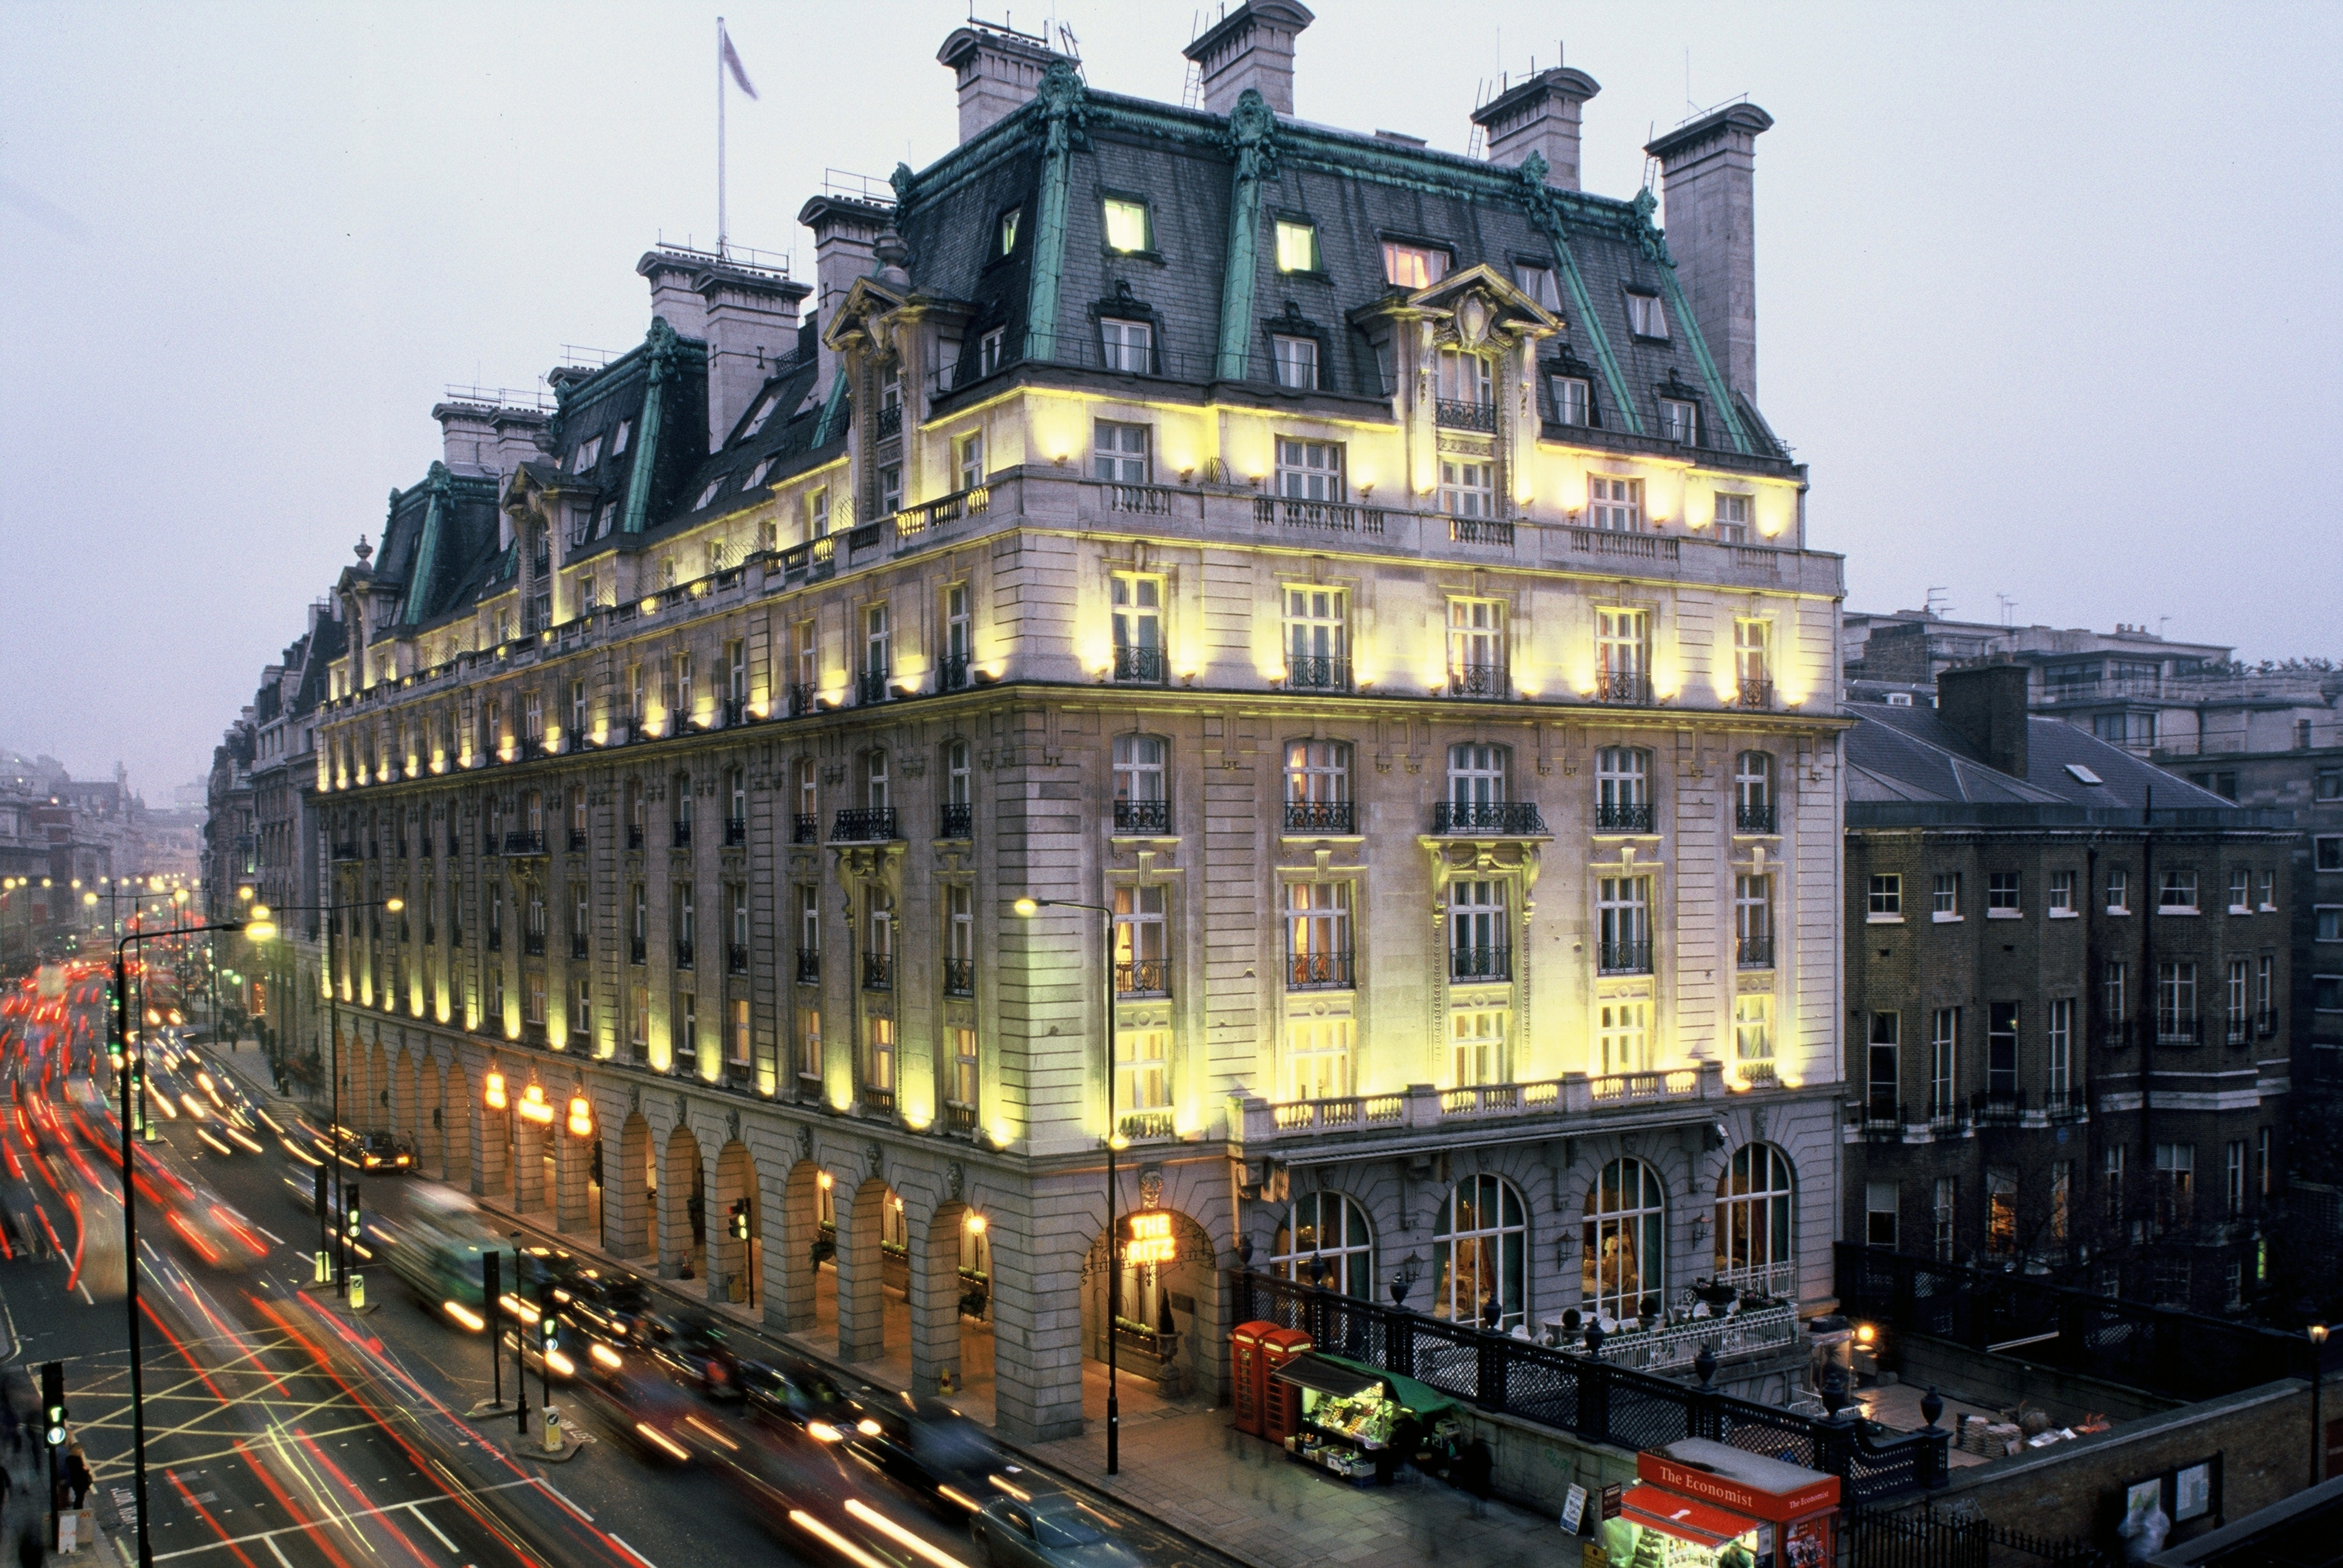 The Most Popular Hotel In London For The Super-rich Is